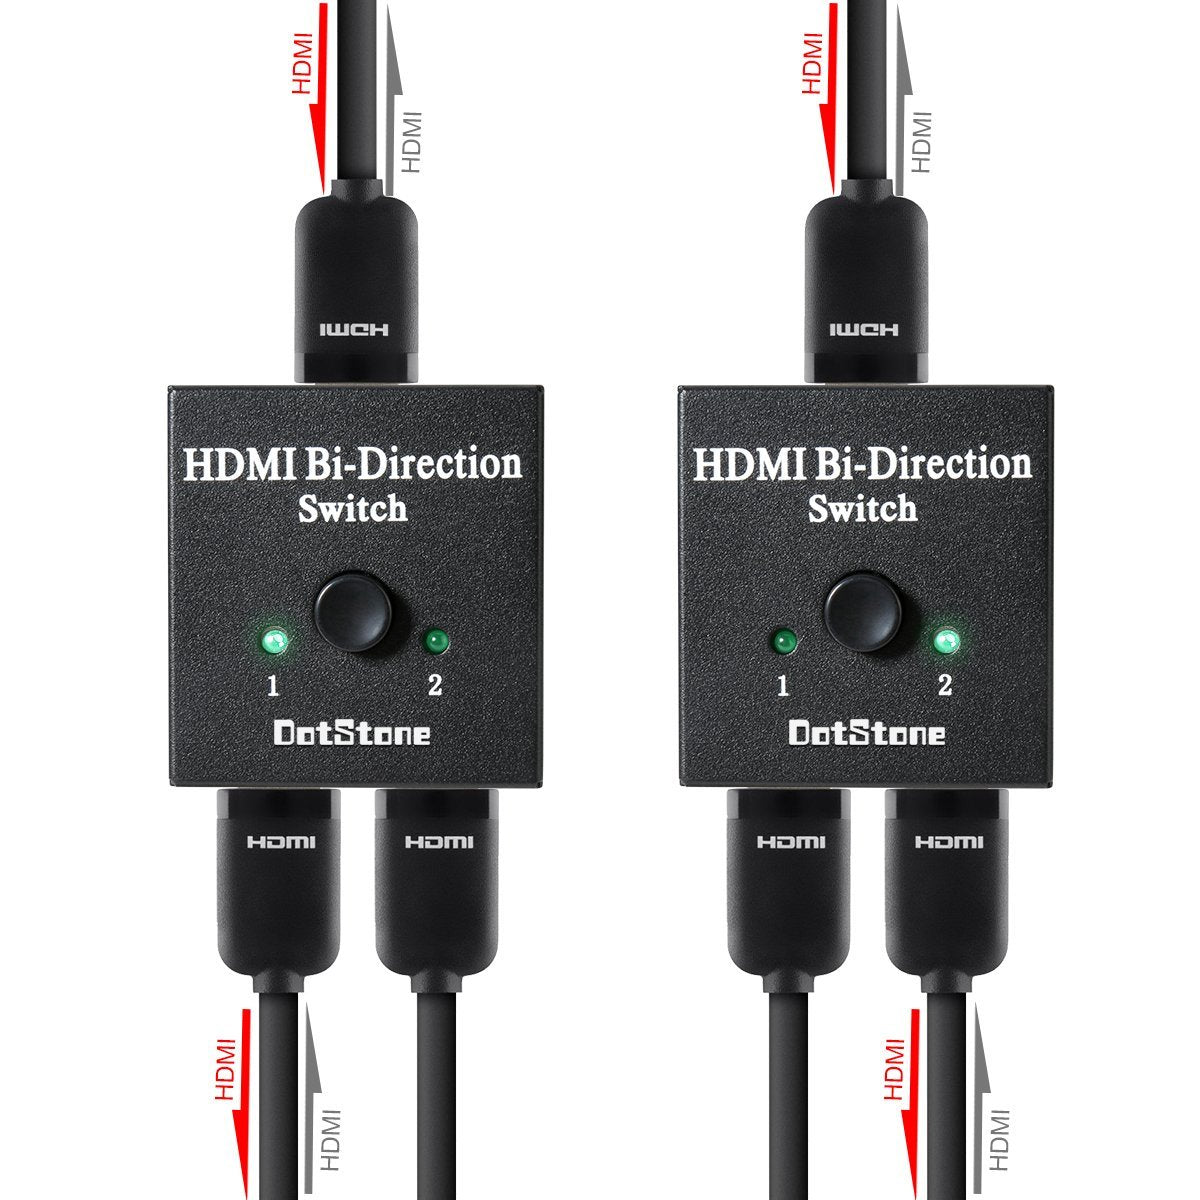 HDMI Hub HDCP Switcher with 2 Ports & HDMI Cables | Monthly Madness